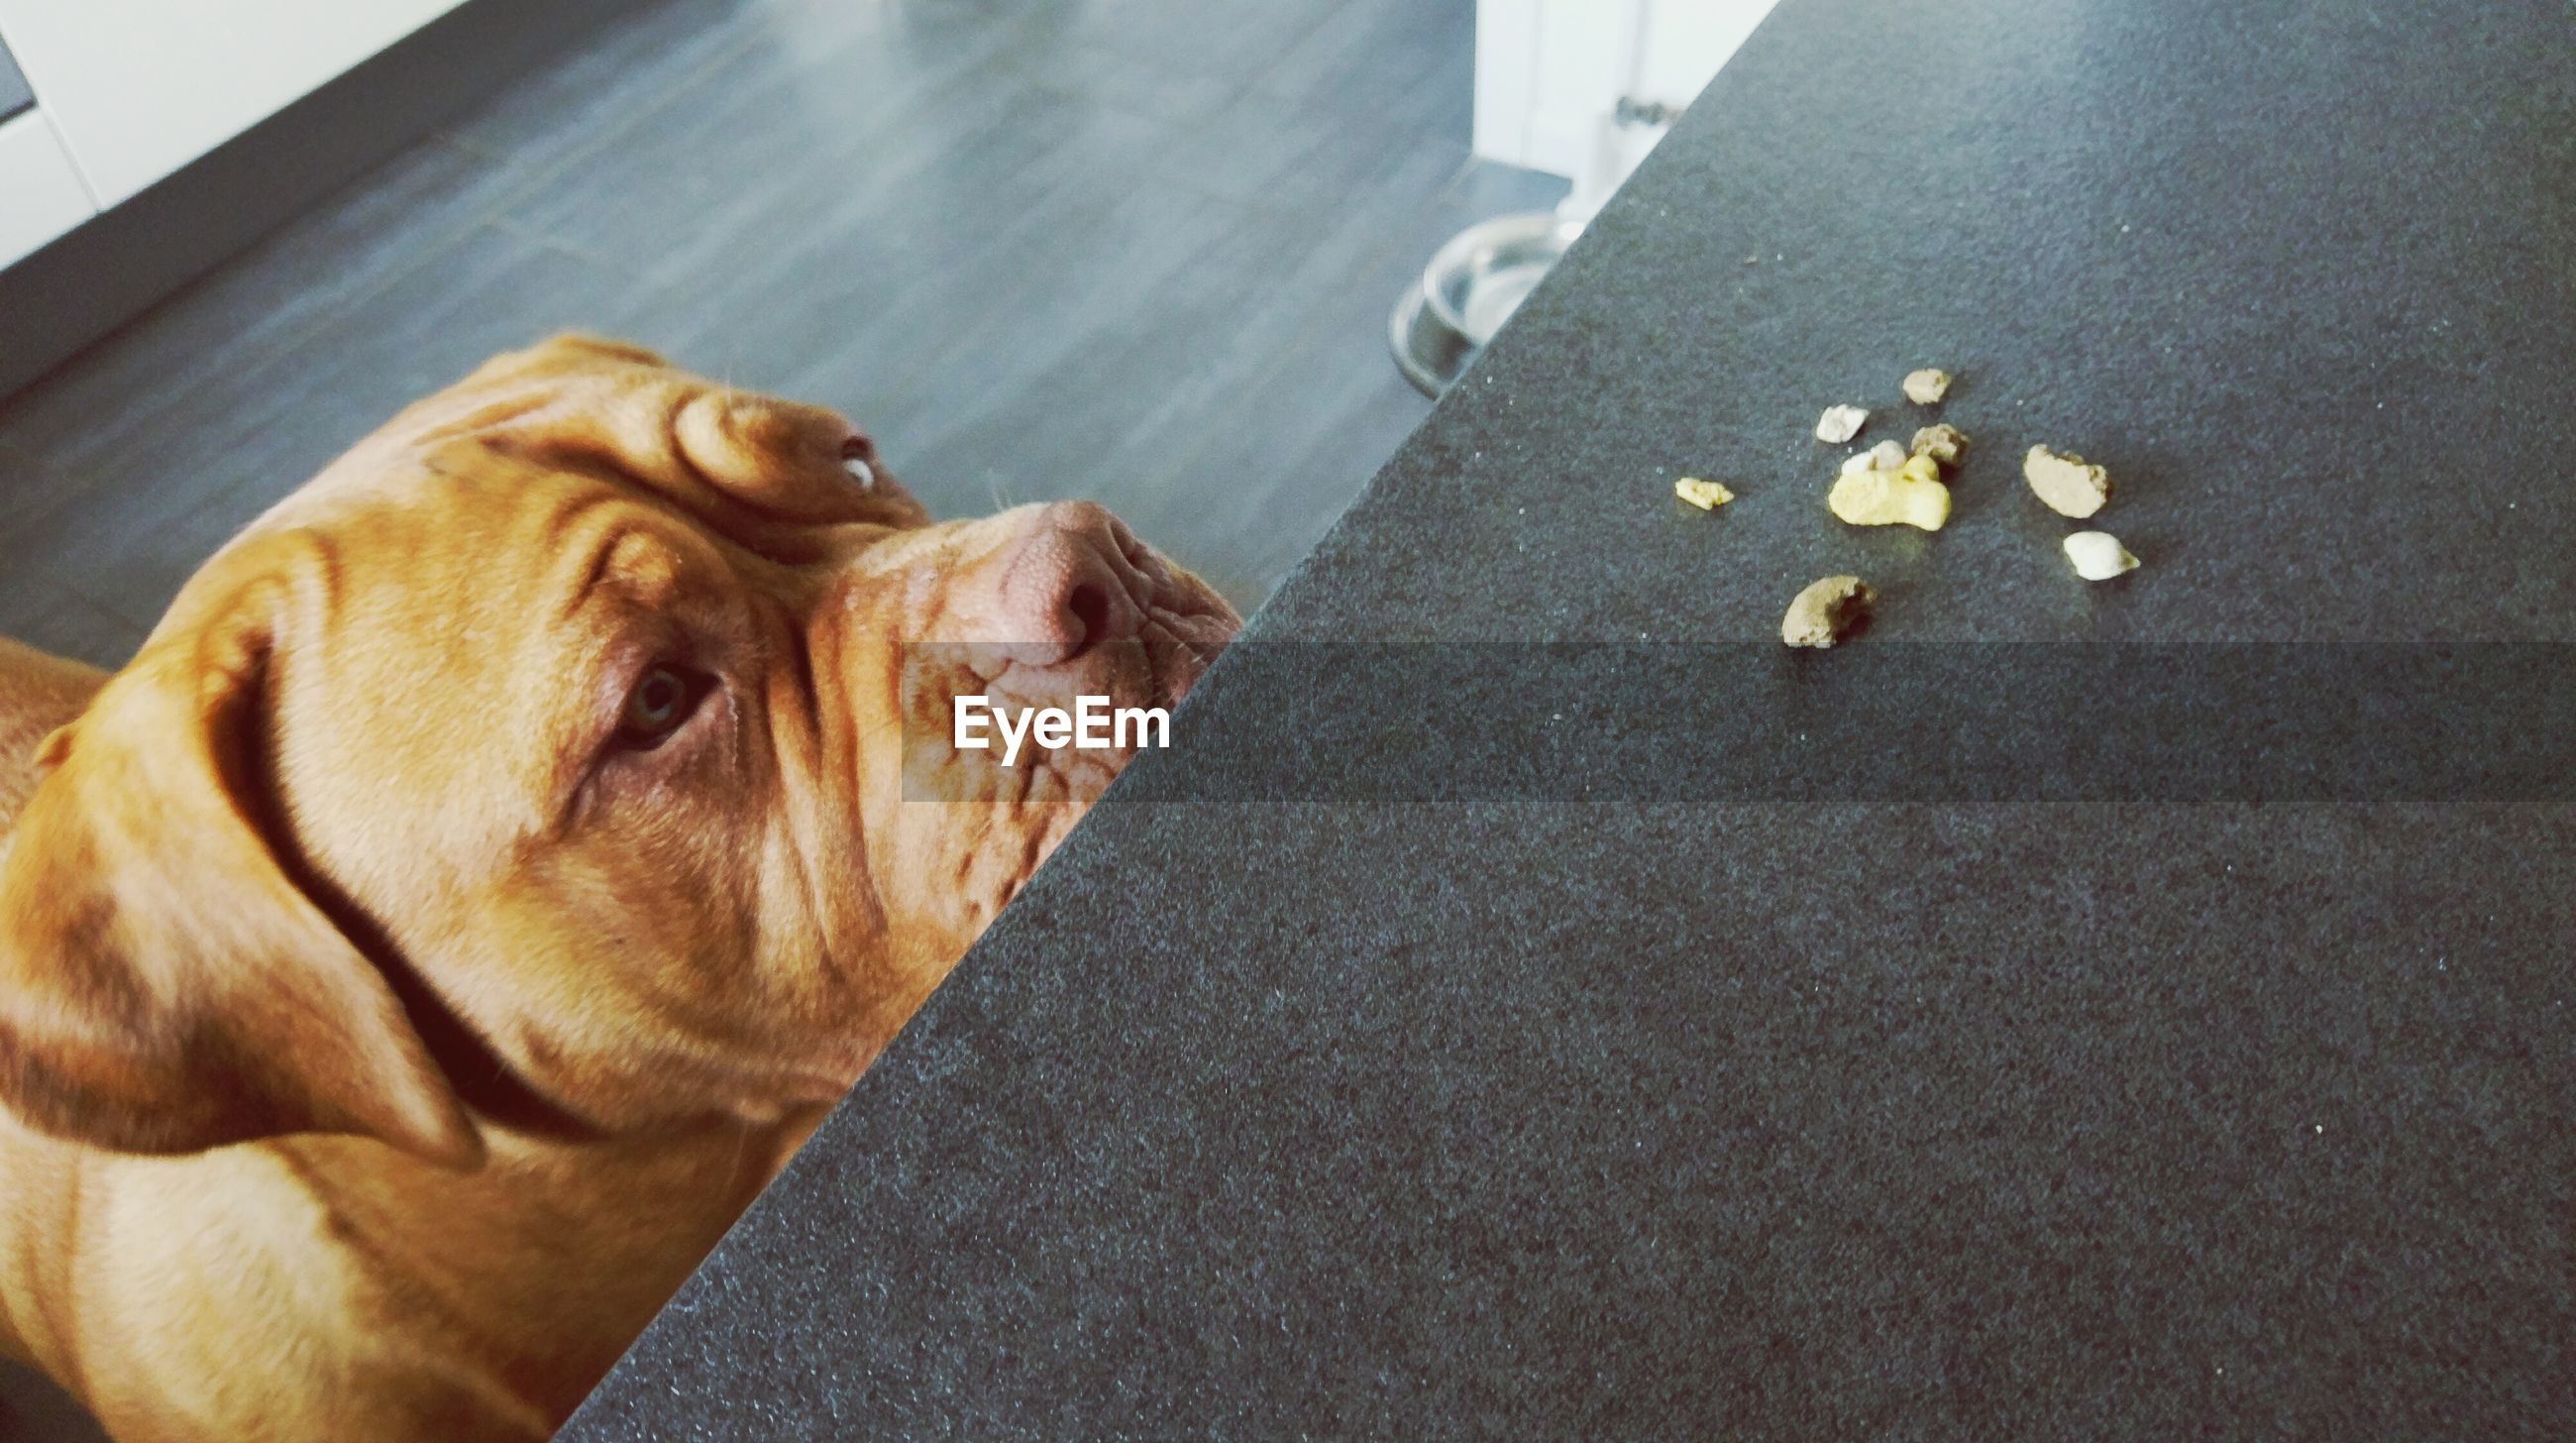 High angle view of dogue de bordeaux looking at food on table